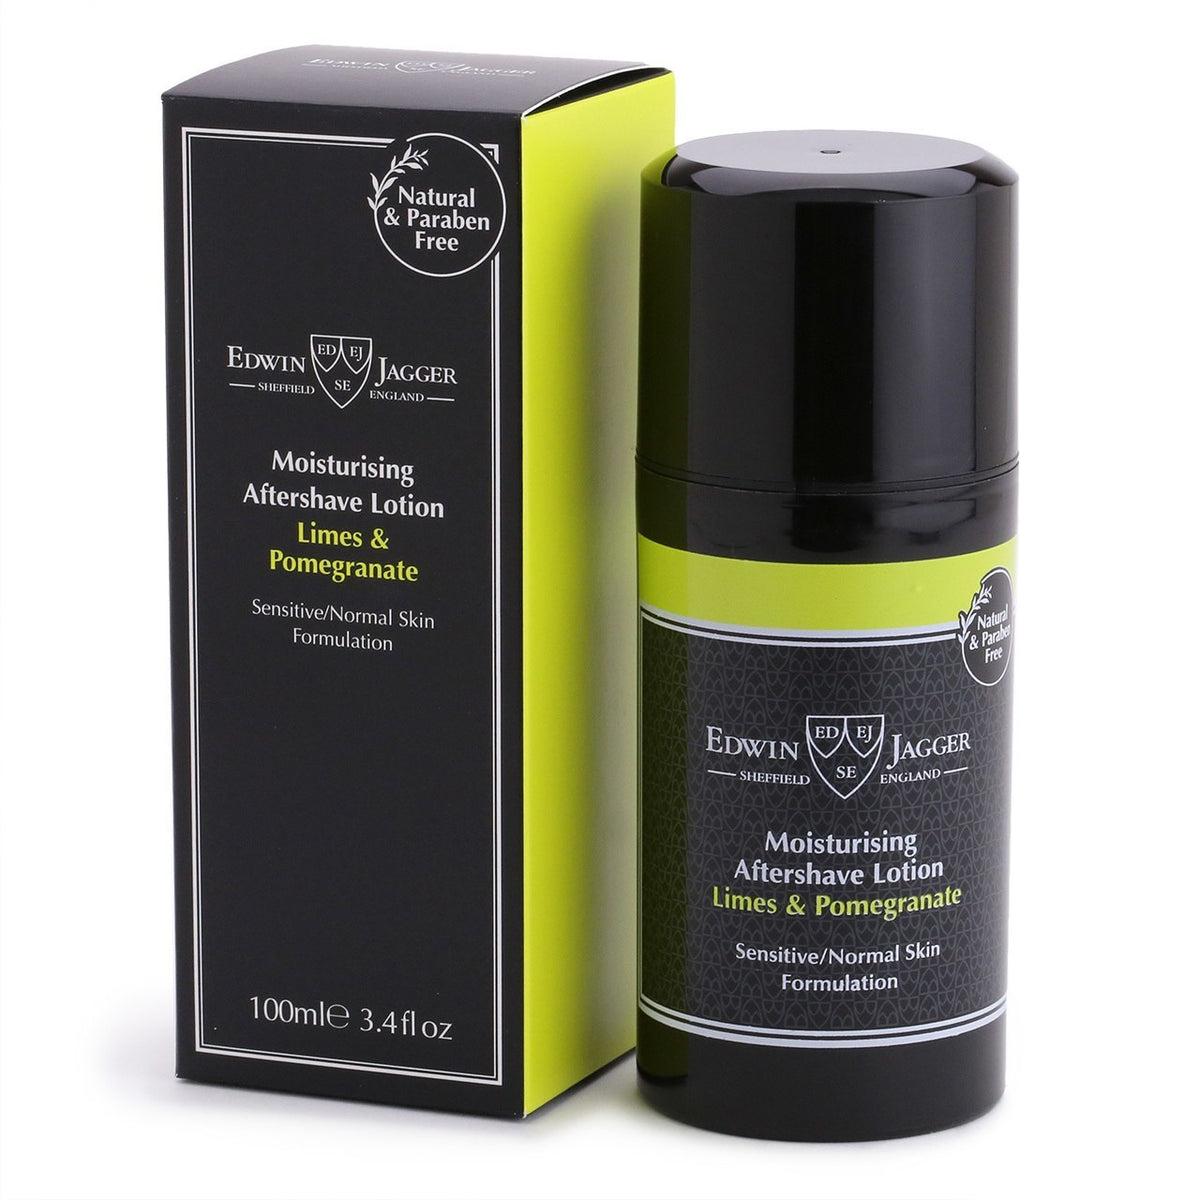 Edwin Jagger Aftershave Lotion - Limes & Pomegranate